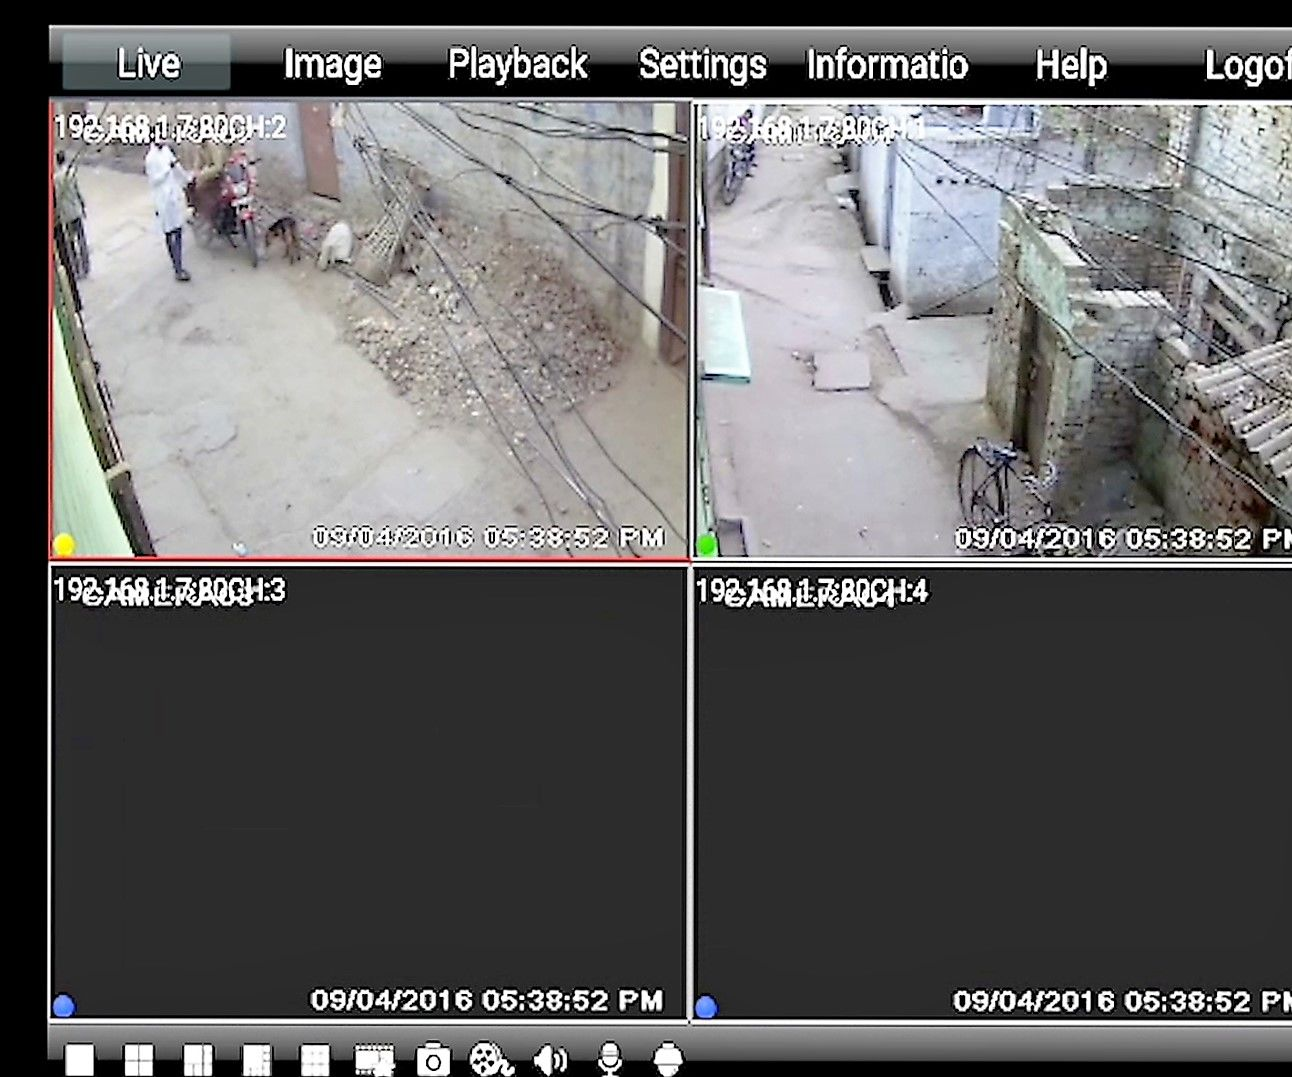 HOW TO CONNECT CCTV TO ANDROID OR IPhone ?: 6 Steps